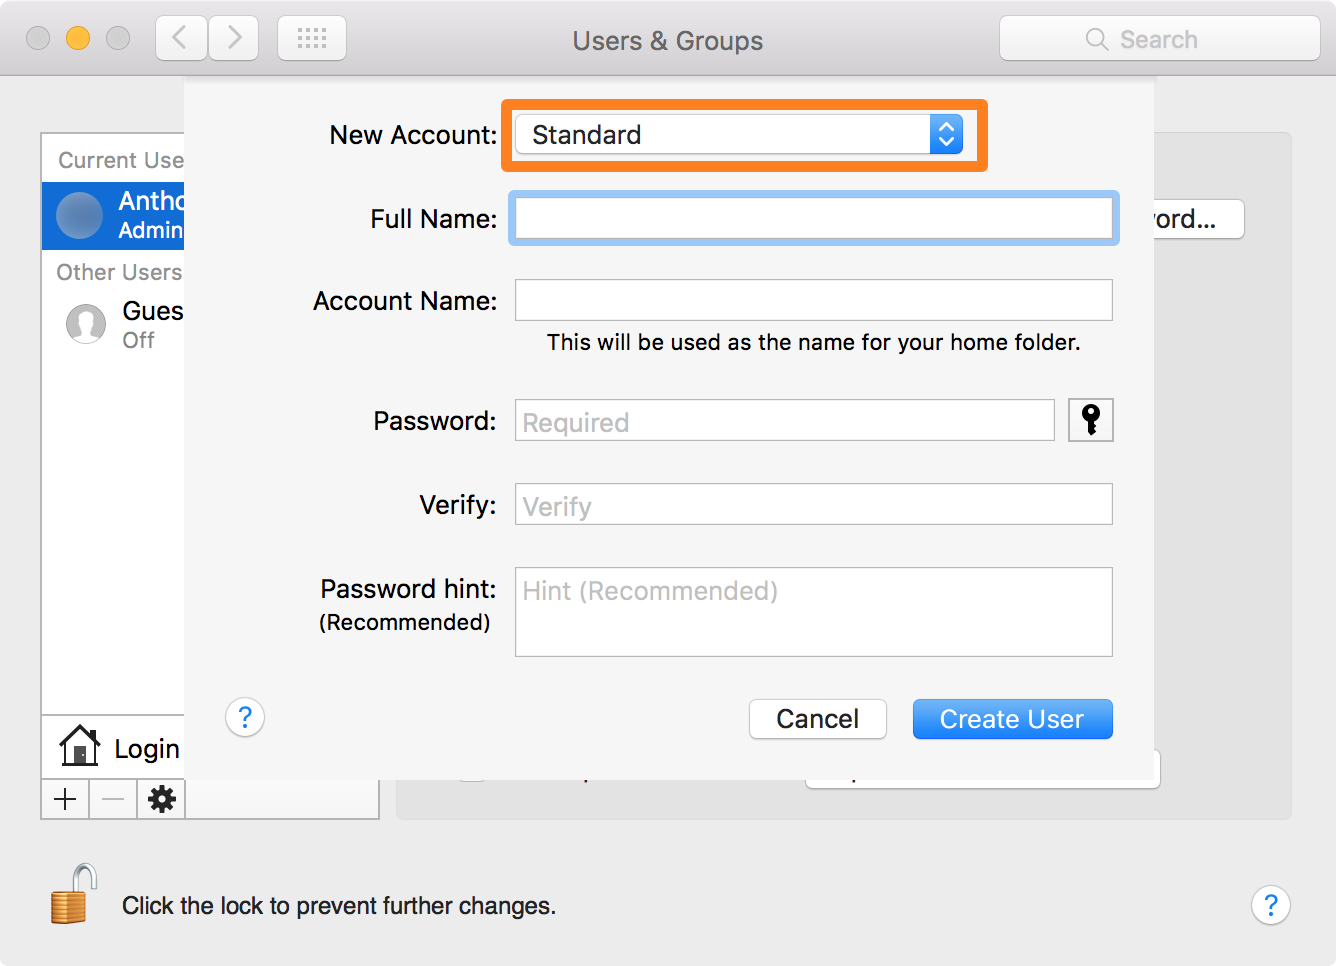 Elevate user account creation to admin on MAc